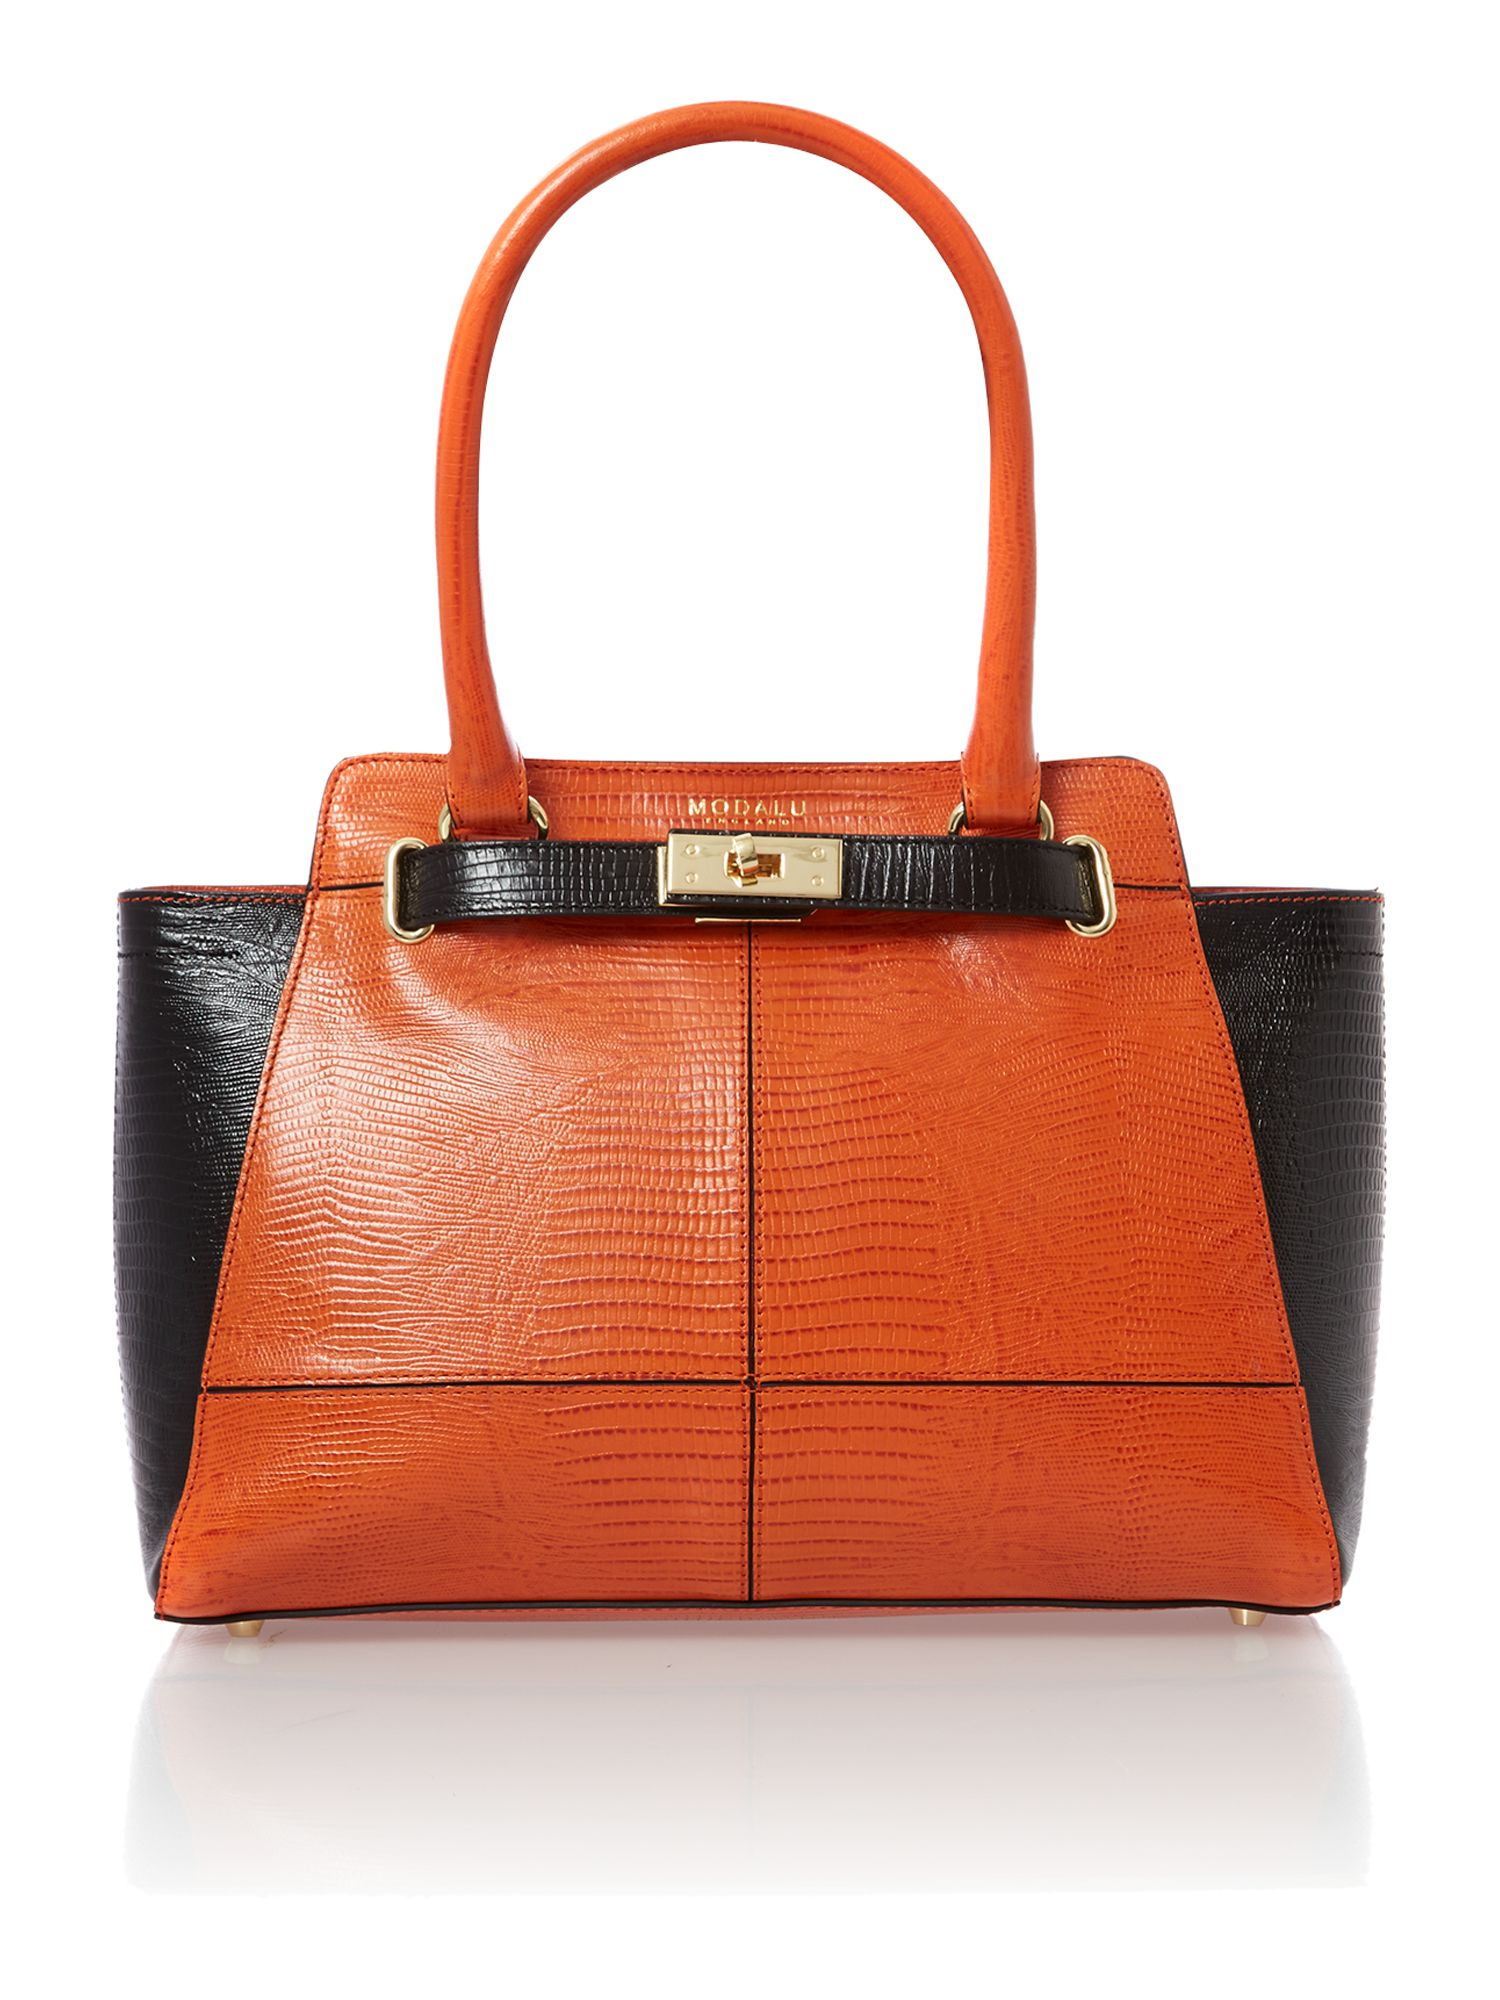 Marlow medium orange tote bag